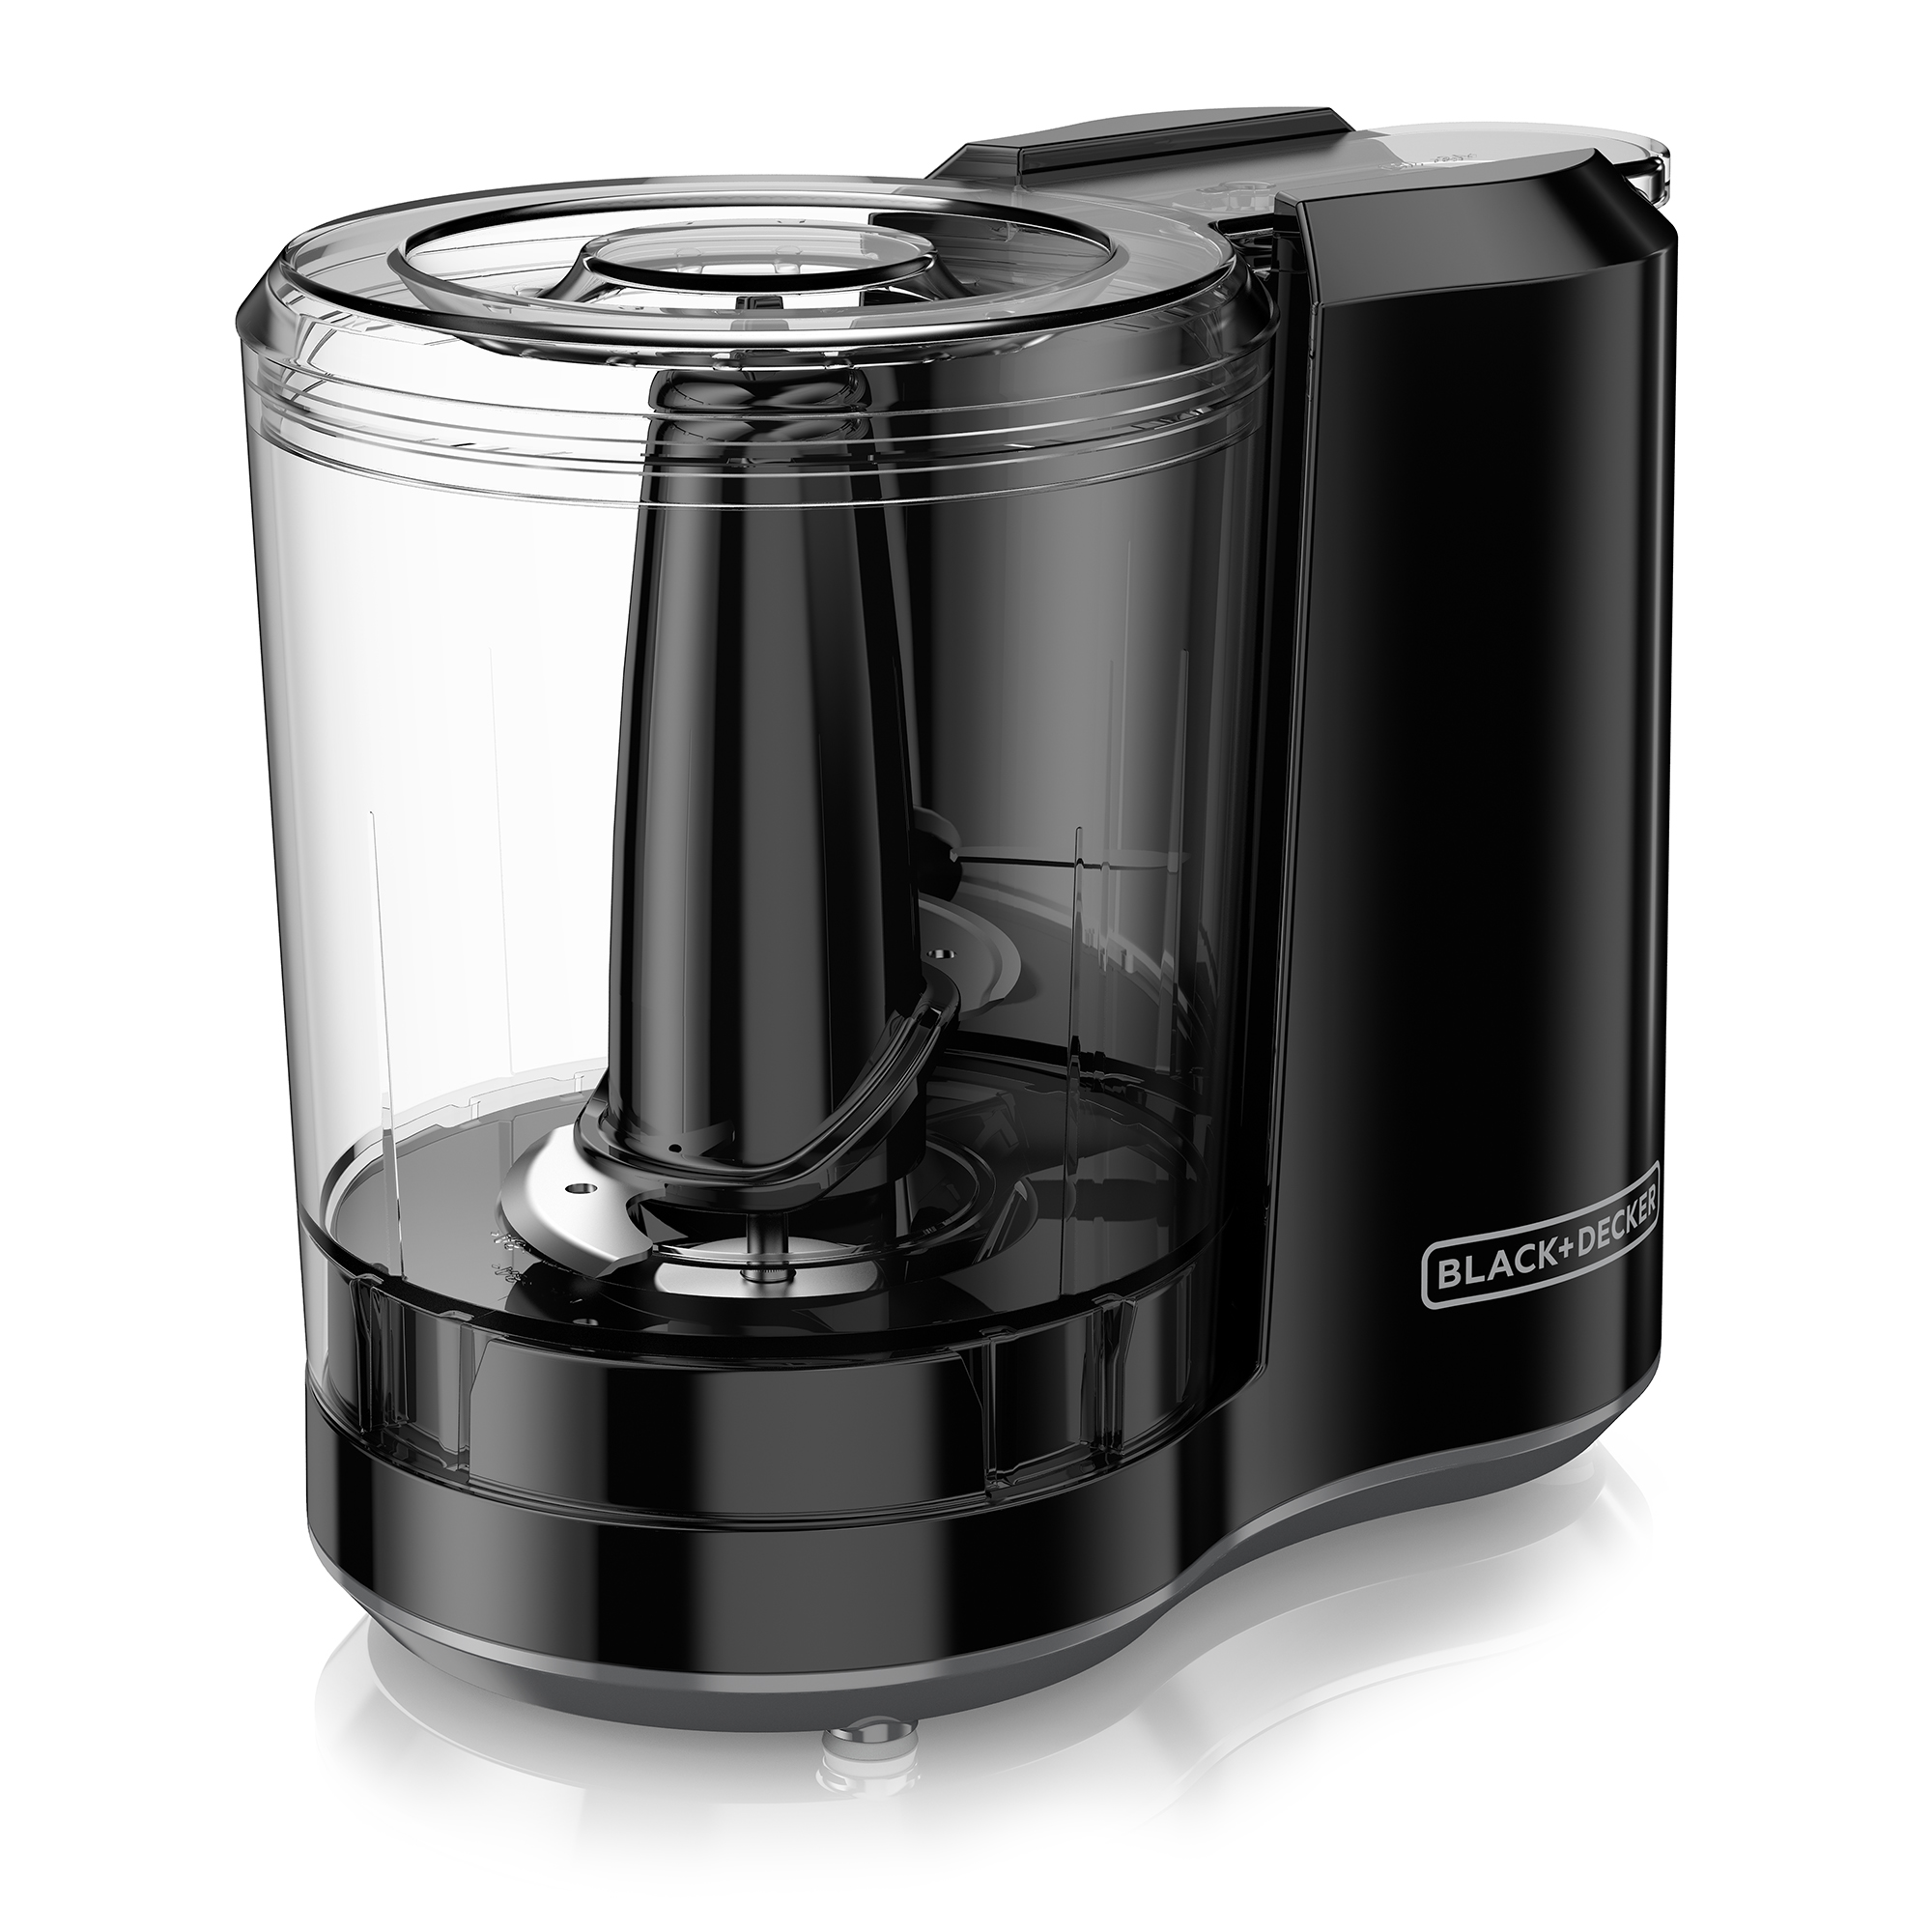 BLACK+DECKER FreshPrep 3-Cup Electric Food Chopper, Black, HC300B